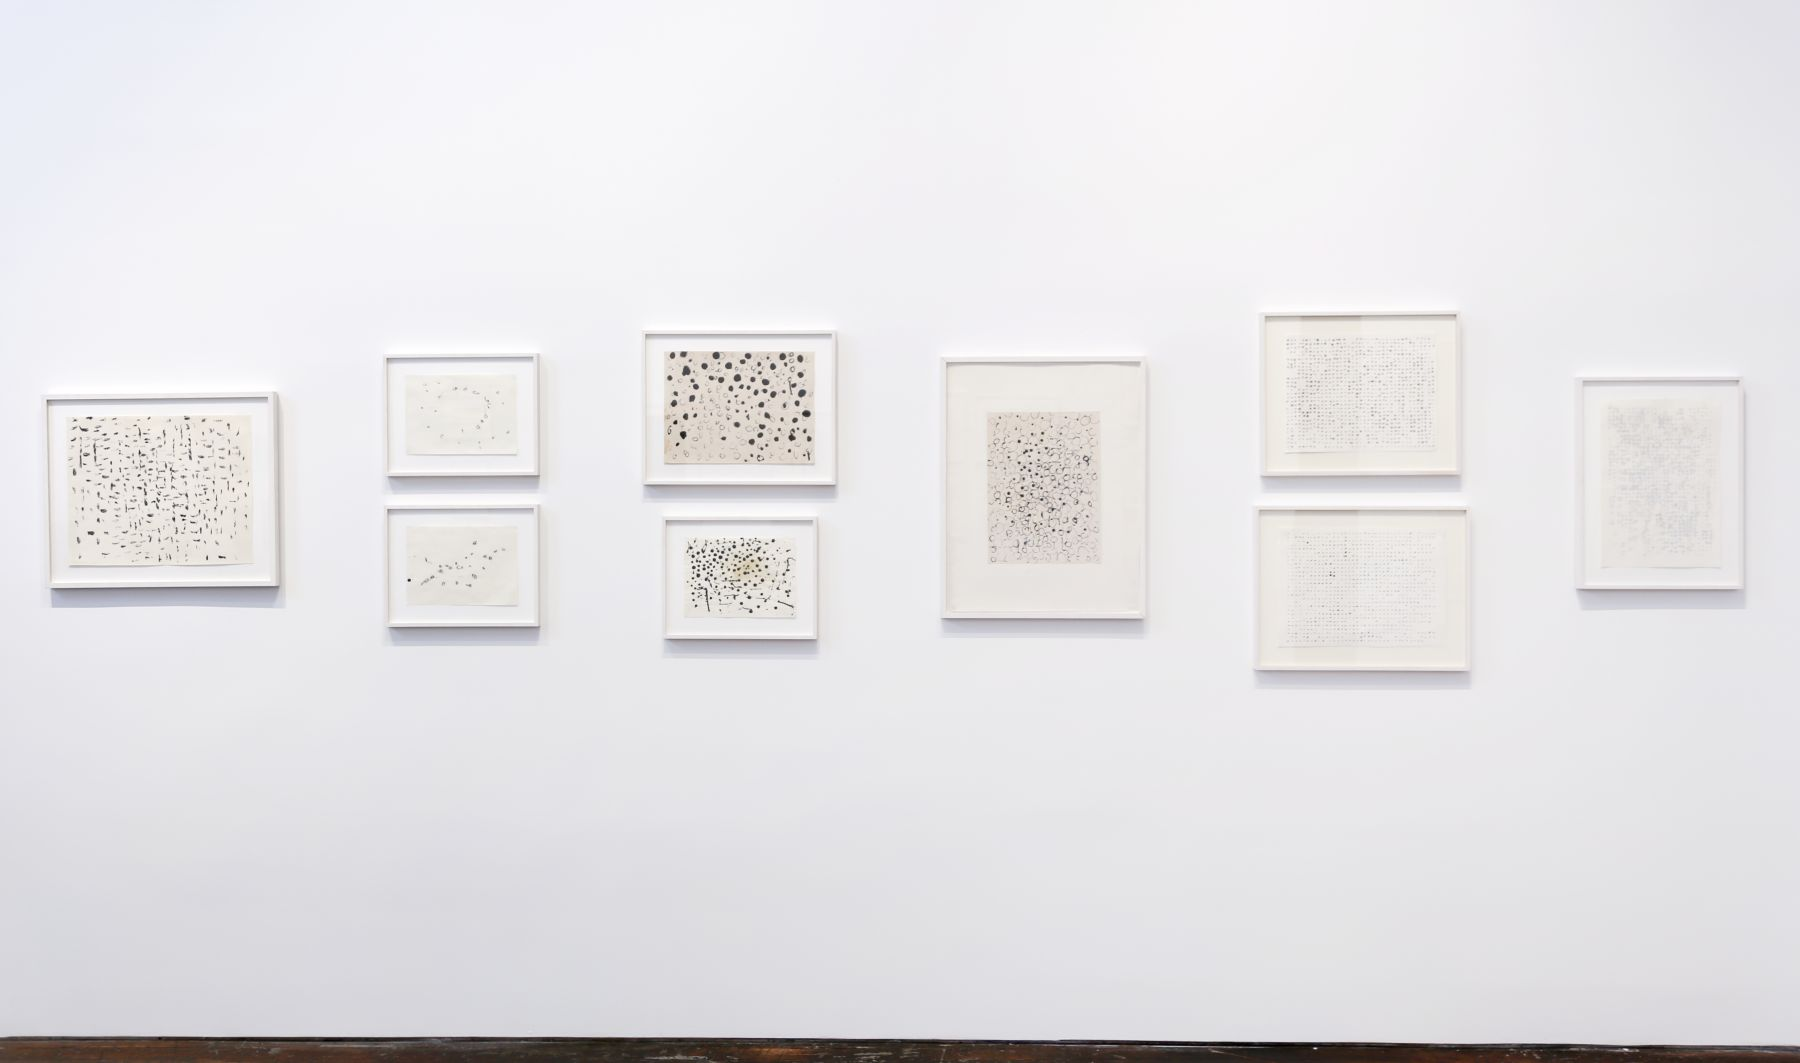 Charlotte Posenenske: Early Works – installation view 5